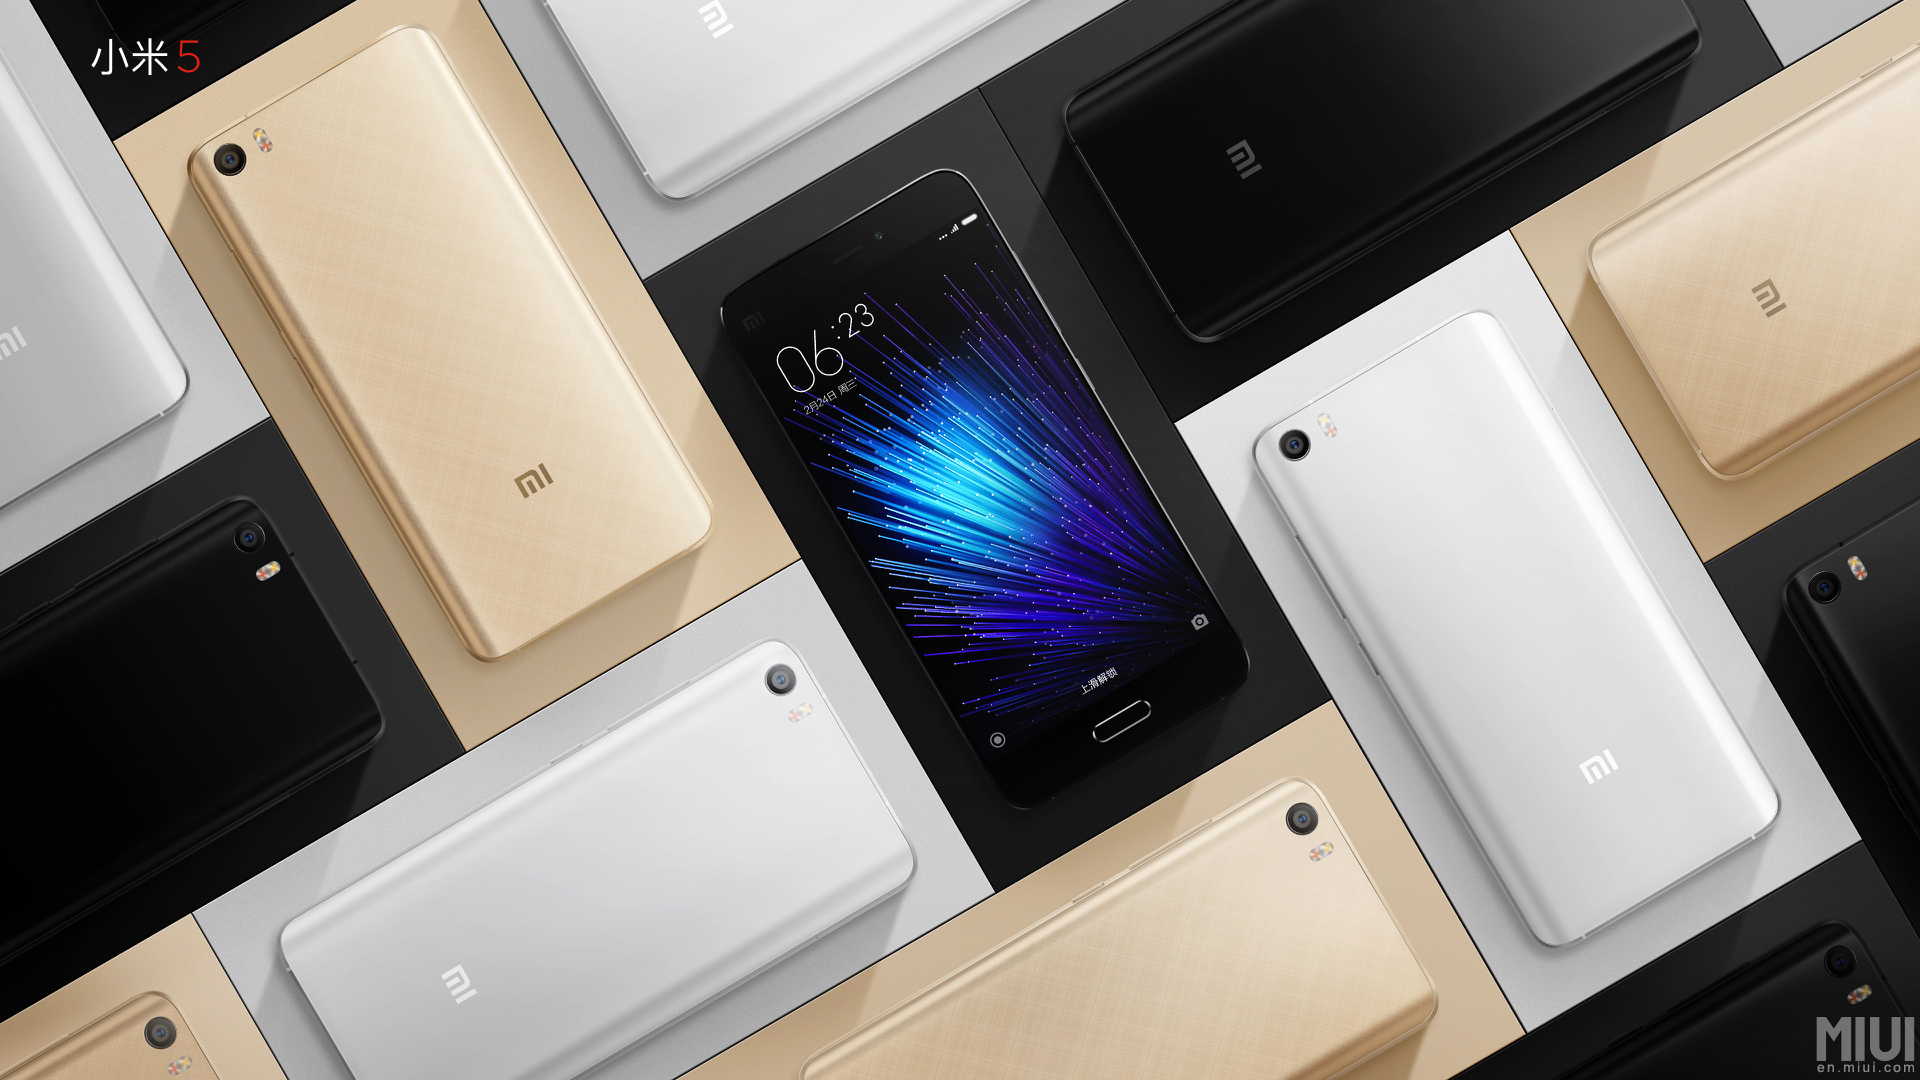 Xiaomi Mi5 and Mi5 PRO Design, Specs, Release Date and Price